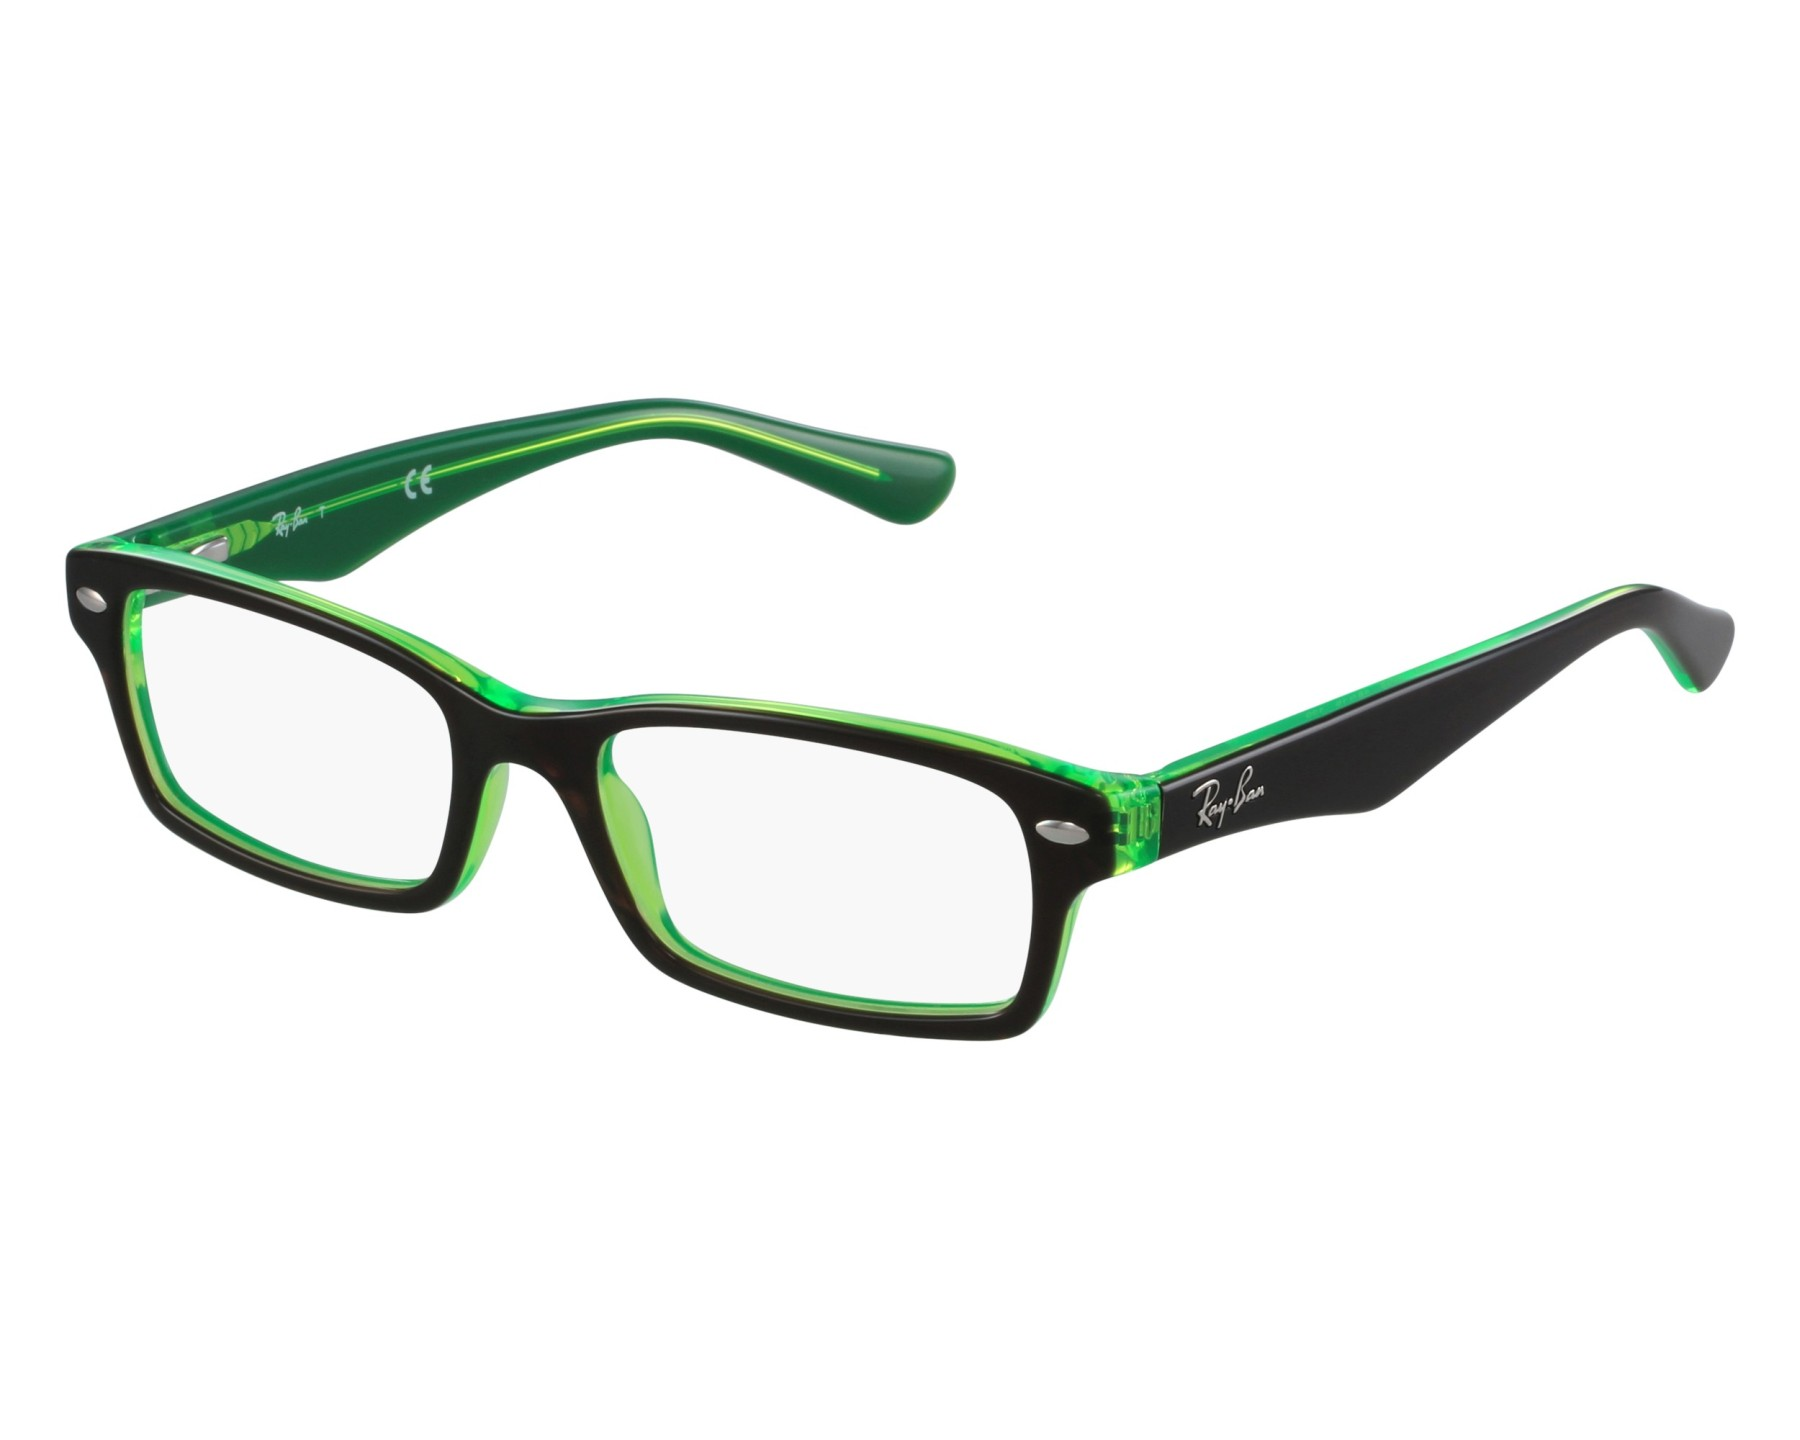 ac92dffee6 thumbnail eyeglasses Ray-Ban RY-1530 3665 - Brown Green front view